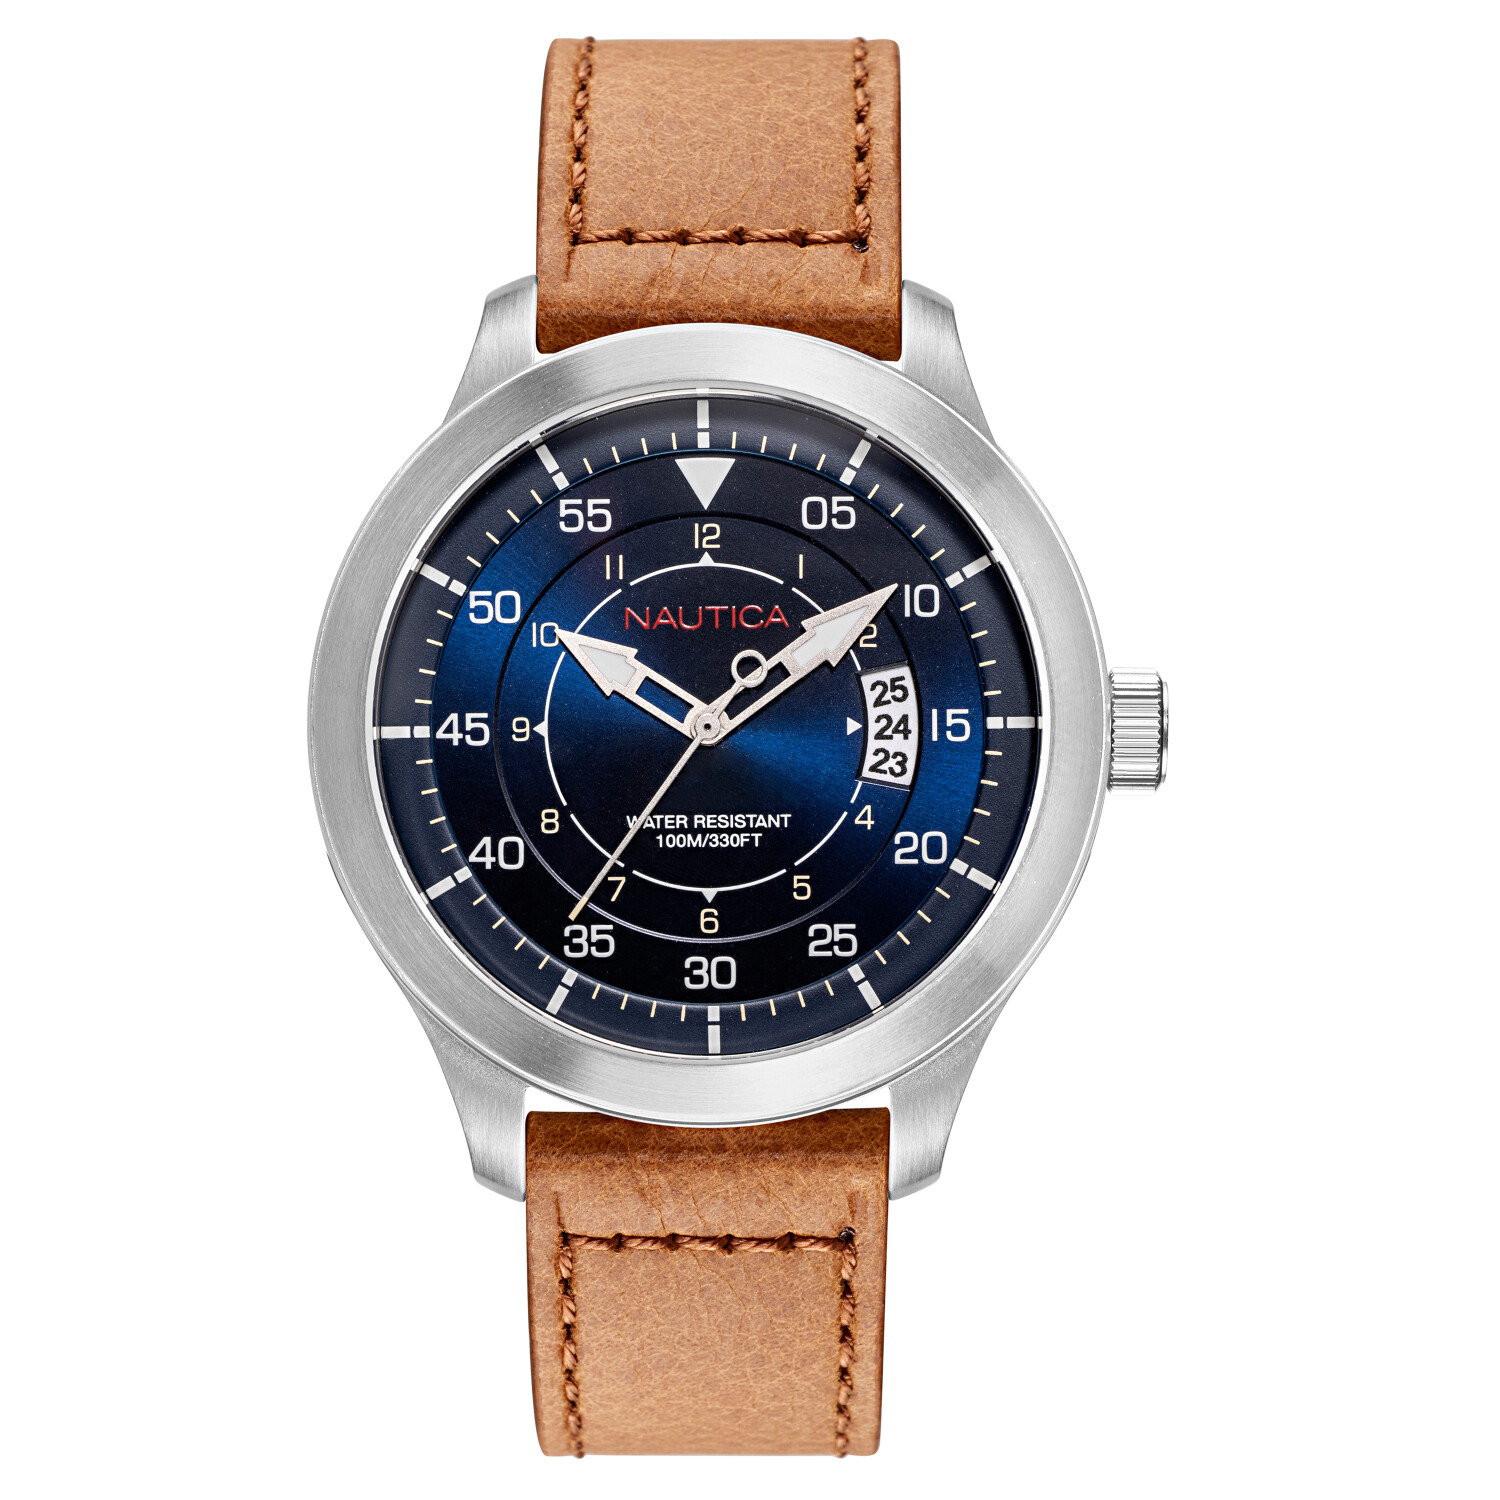 Nautica Watch NAPPLP901 Point Loma Analog, Water Resistant, Date Display, Luminous Hands, Brown Leather Band, Blue